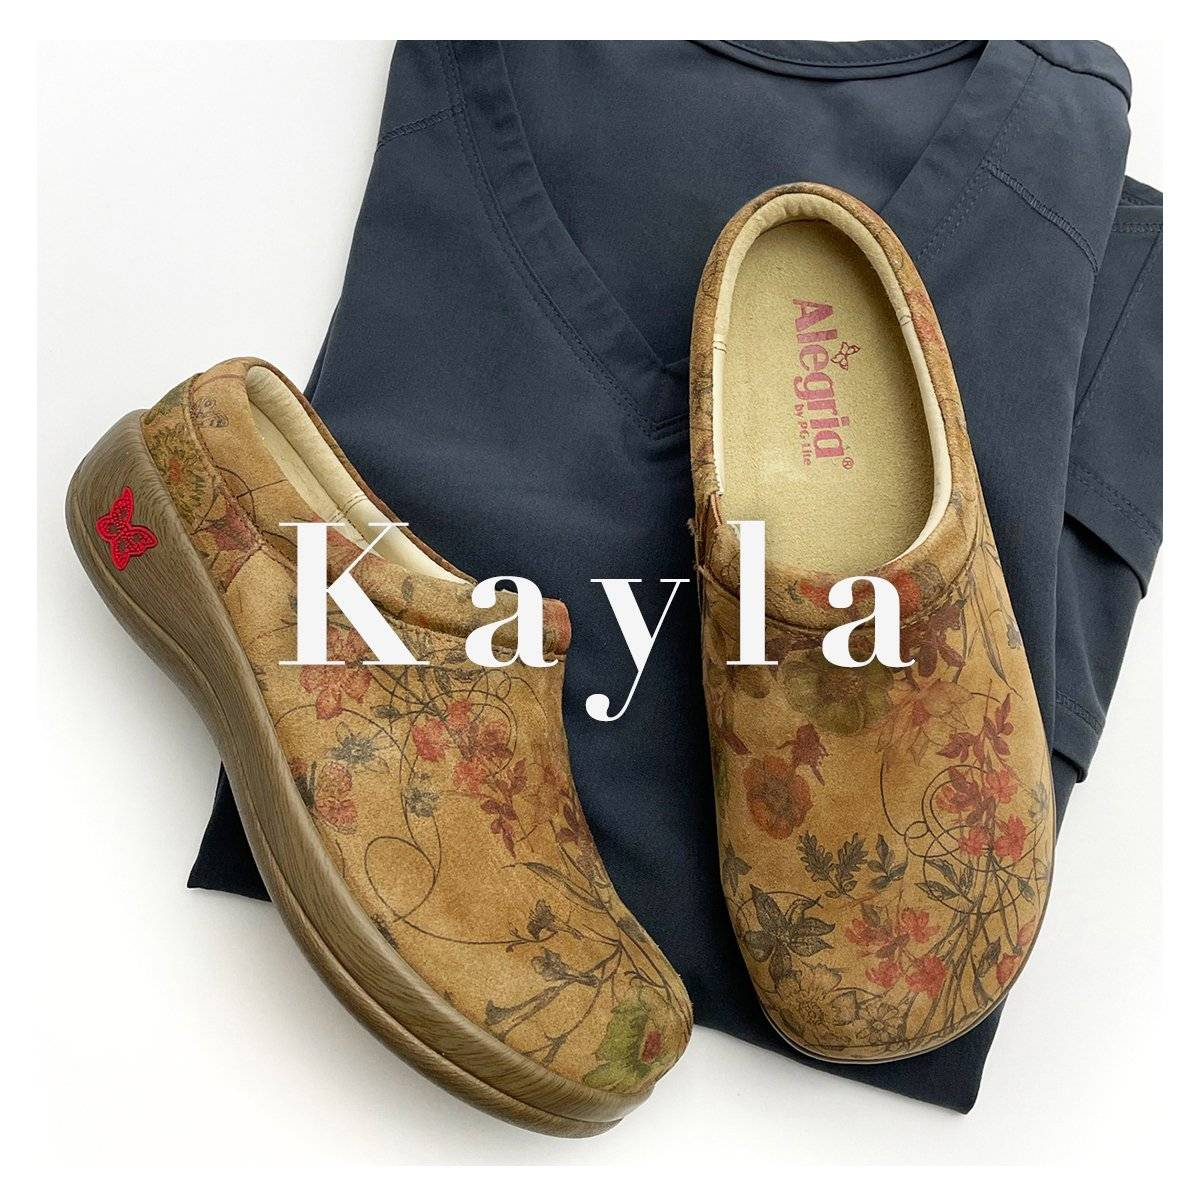 Alegria Kayla clog collection - in Woodland Wonders